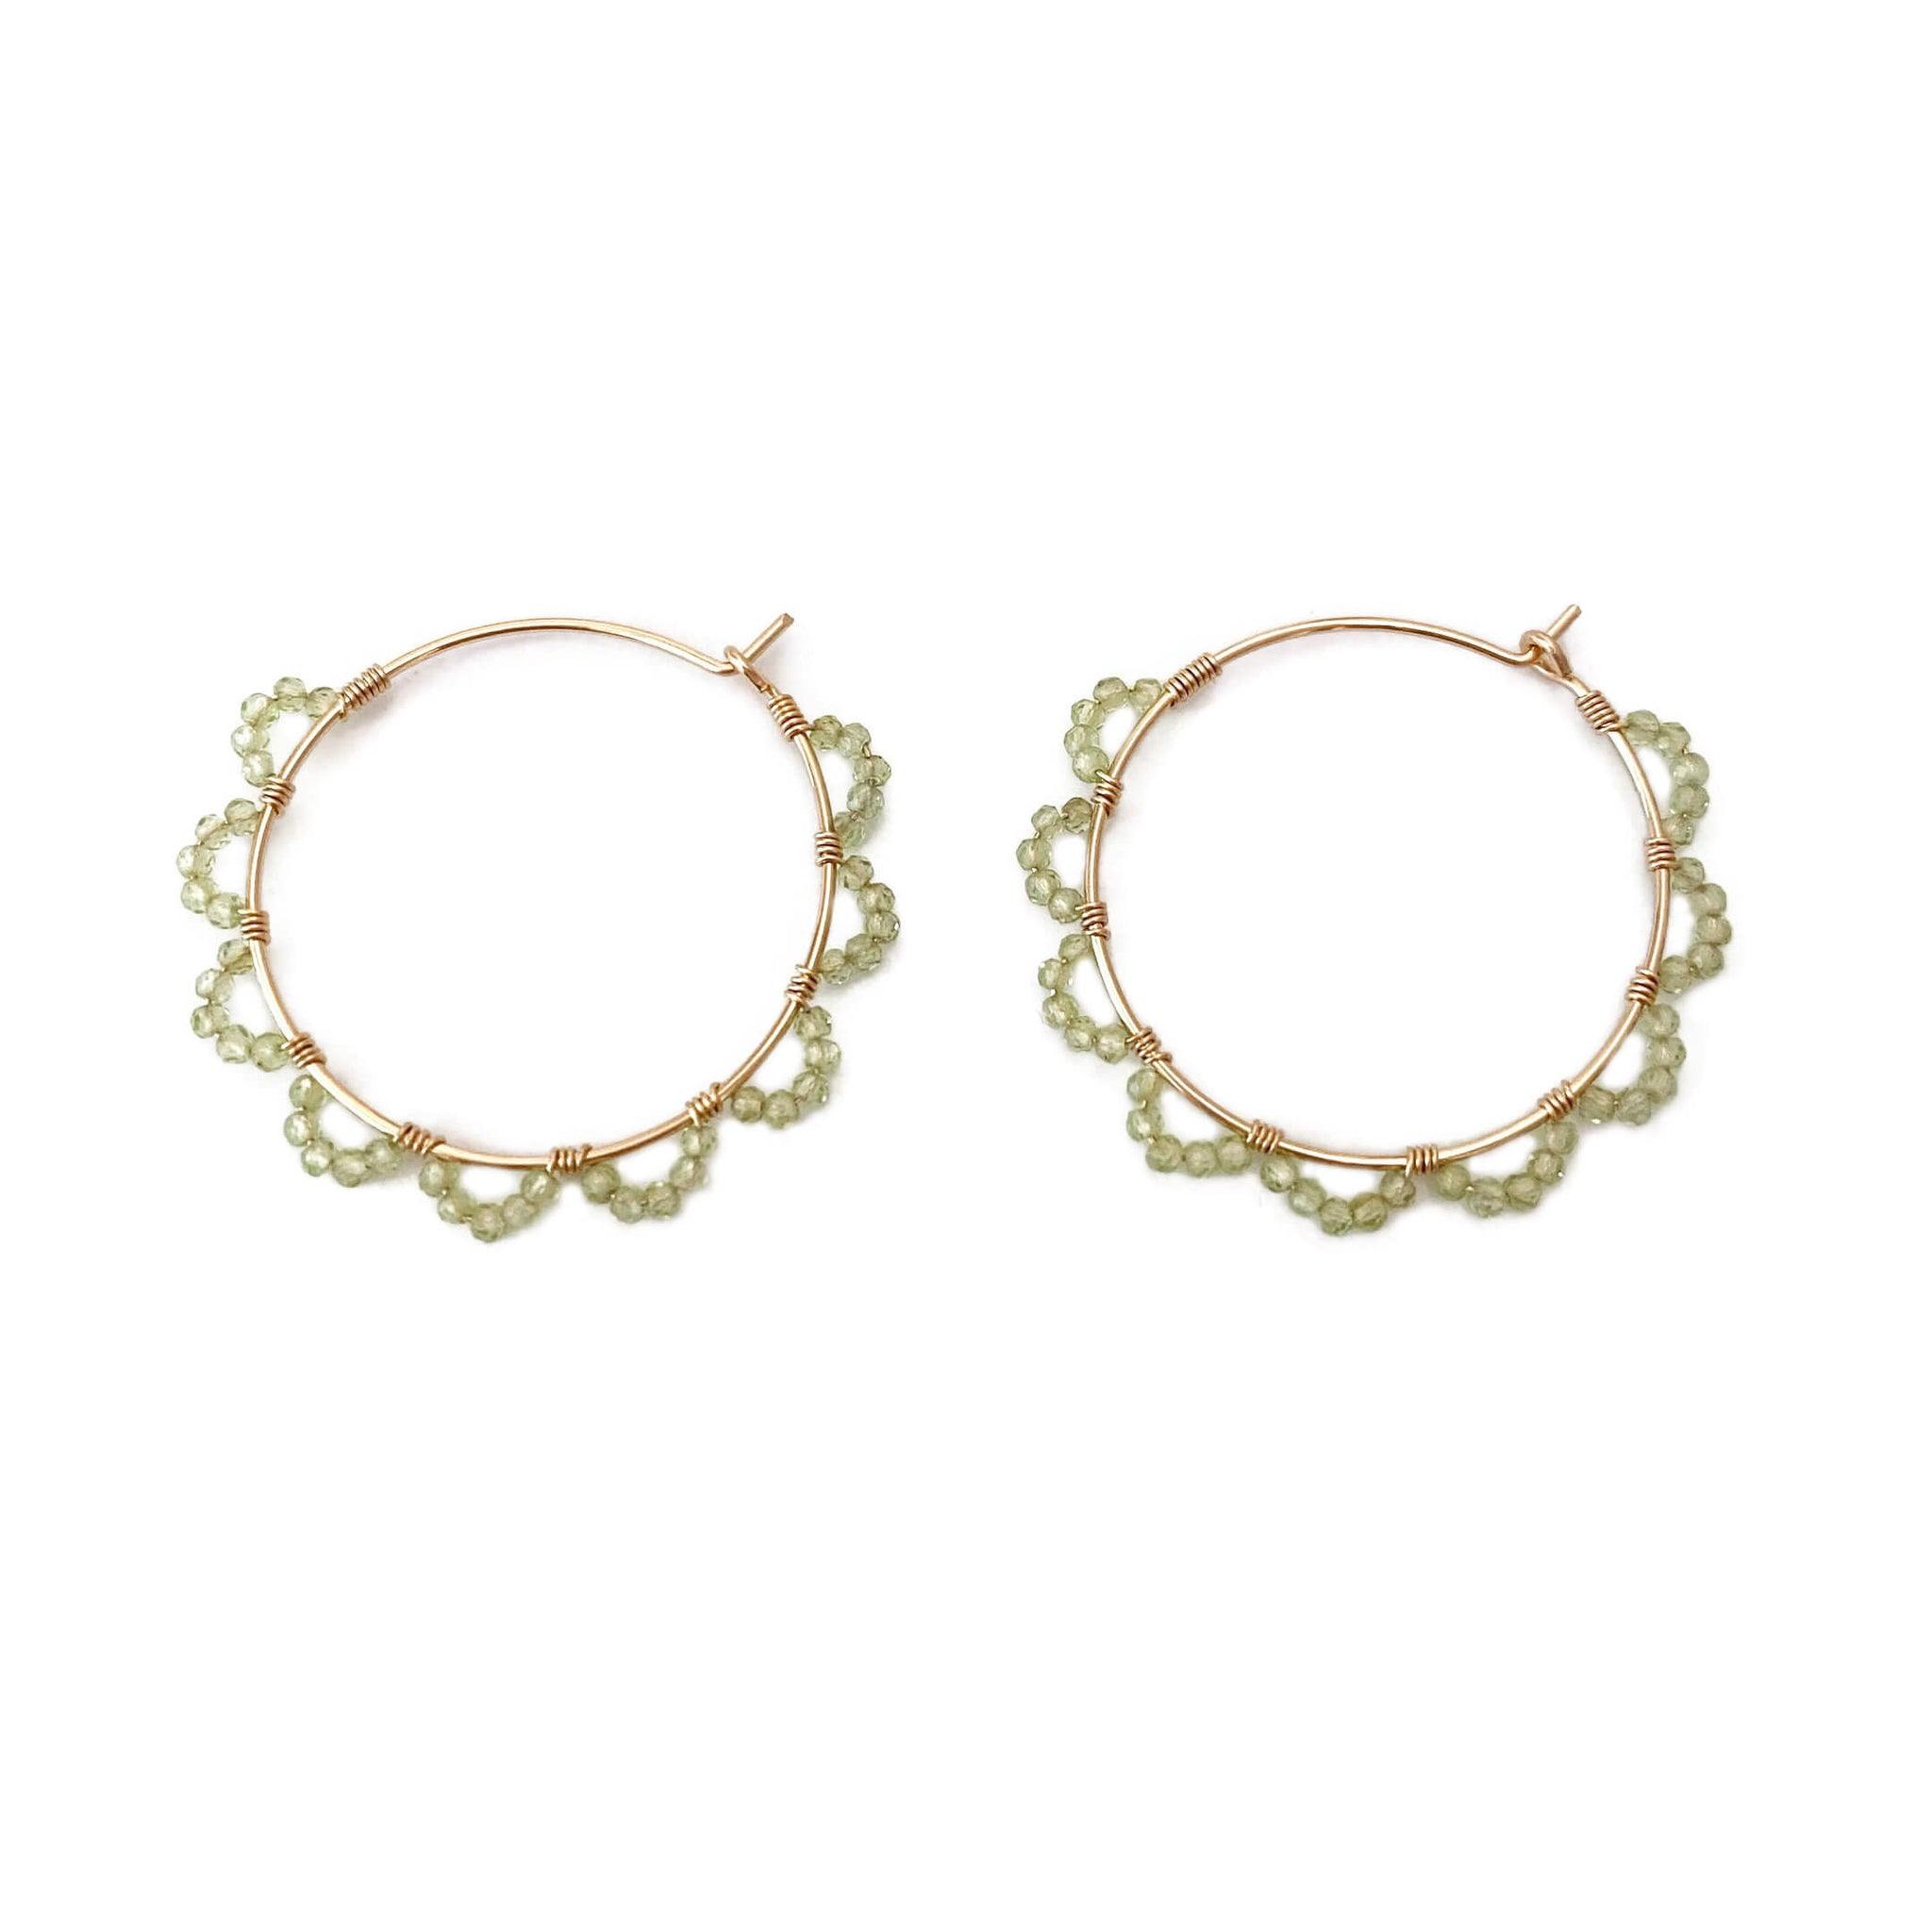 these peridot hoop earrings are elegant and they look like green petals.